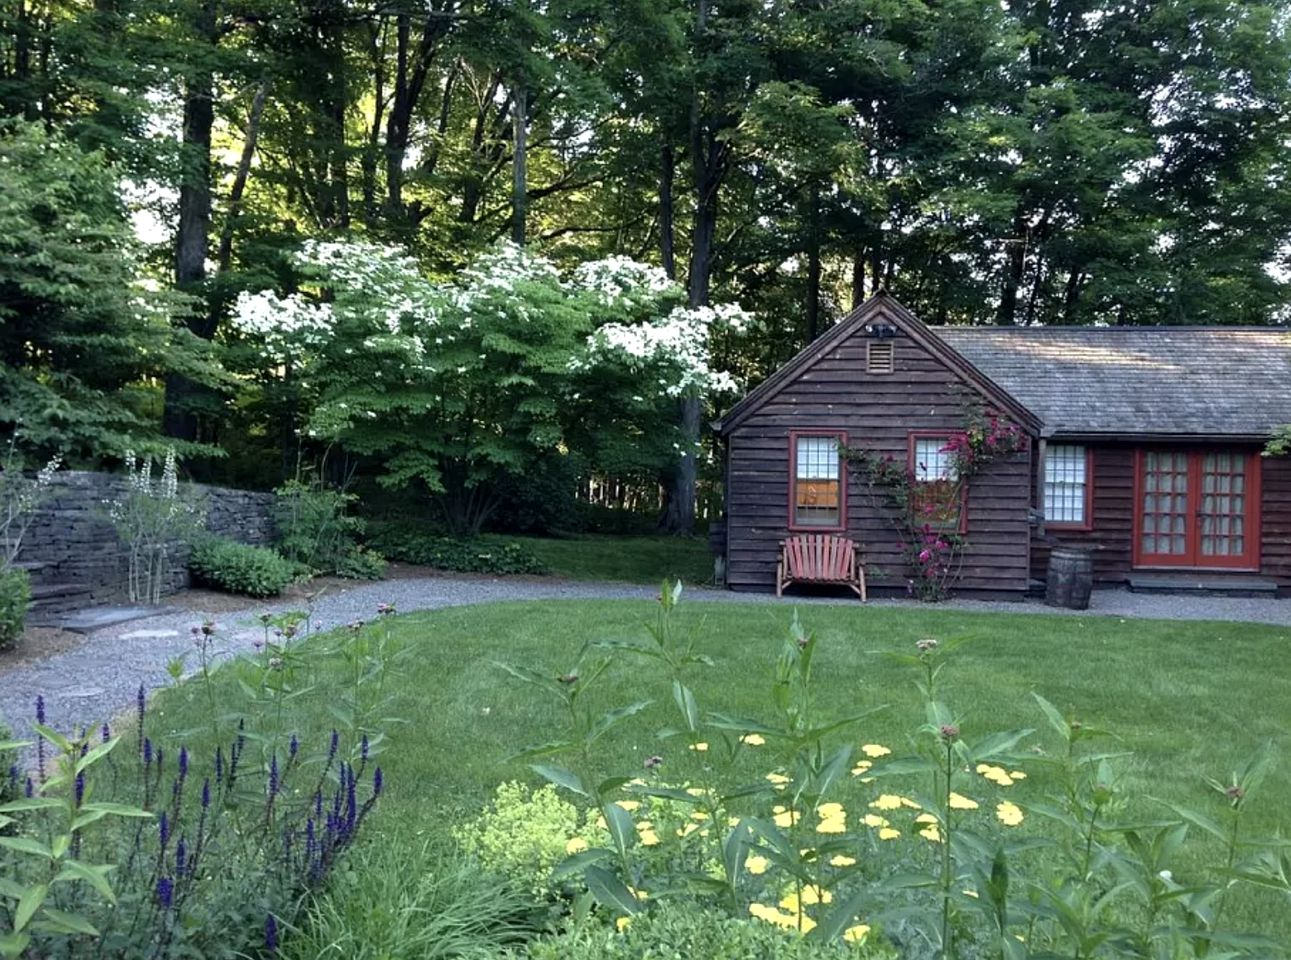 Cabins (Saugerties, New York, United States)